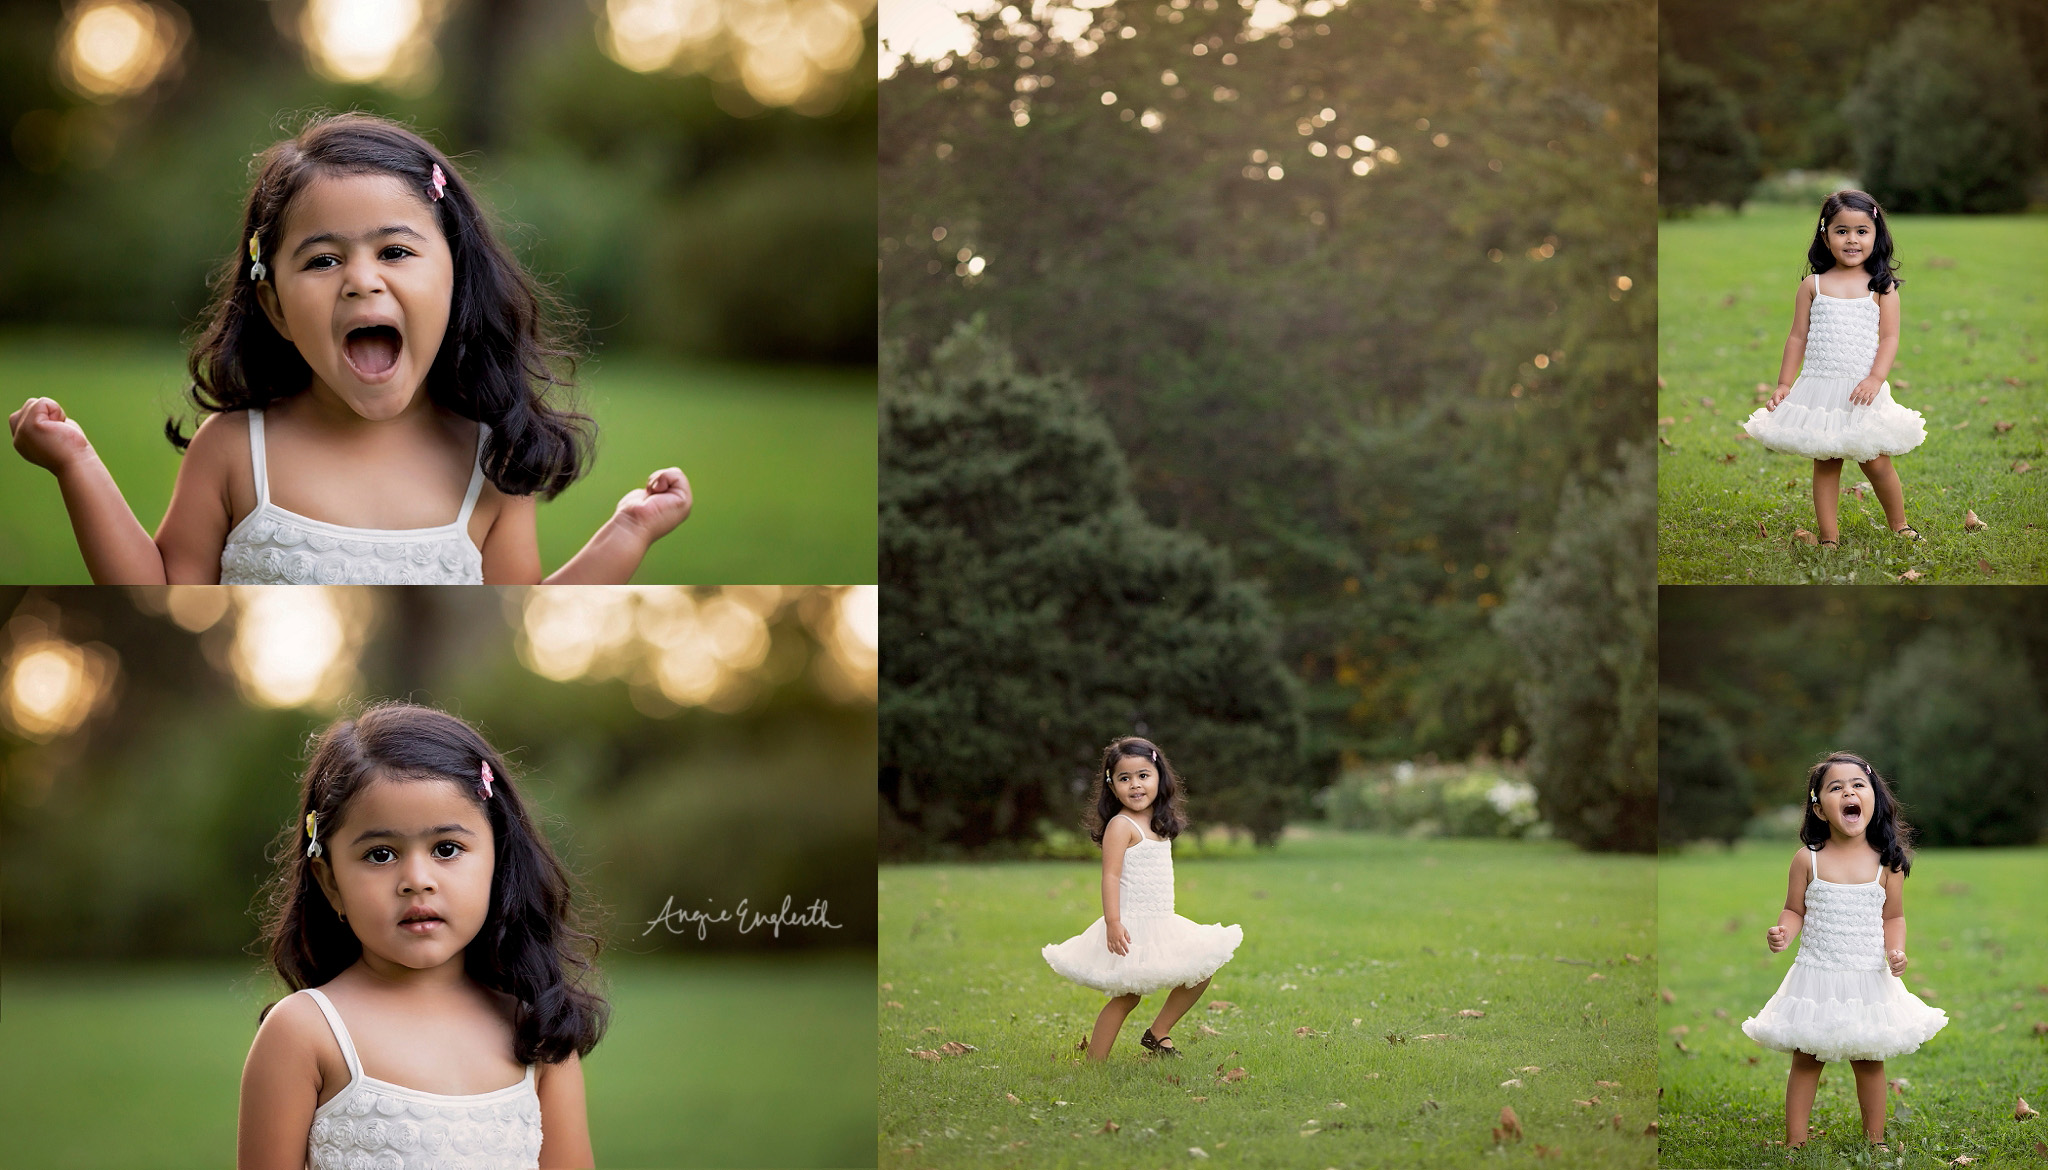 lancaster_newborn_and_maternity_photographer_angie_englerth_central_pa_b027.jpg